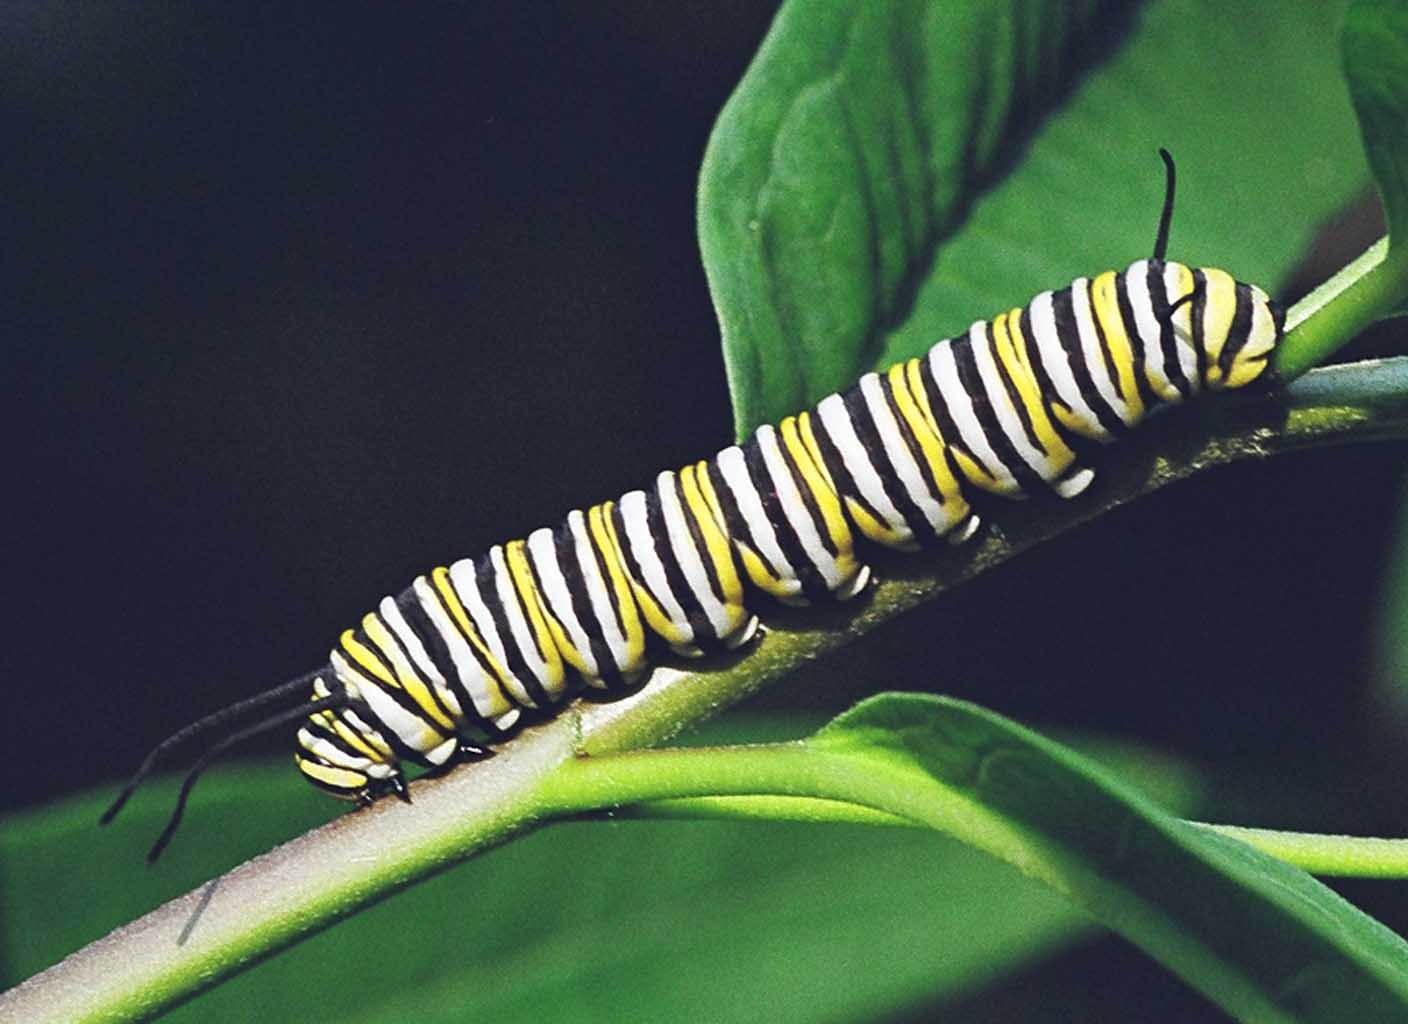 caterpillar research paper Caterpillar research paper 2324 words | 10 pages running head: research paper: caterpillar 1 research paper: caterpillar david m adkison american military university research paper: caterpillar abstract the topic of my research was the global management expertise and effectiveness of the.